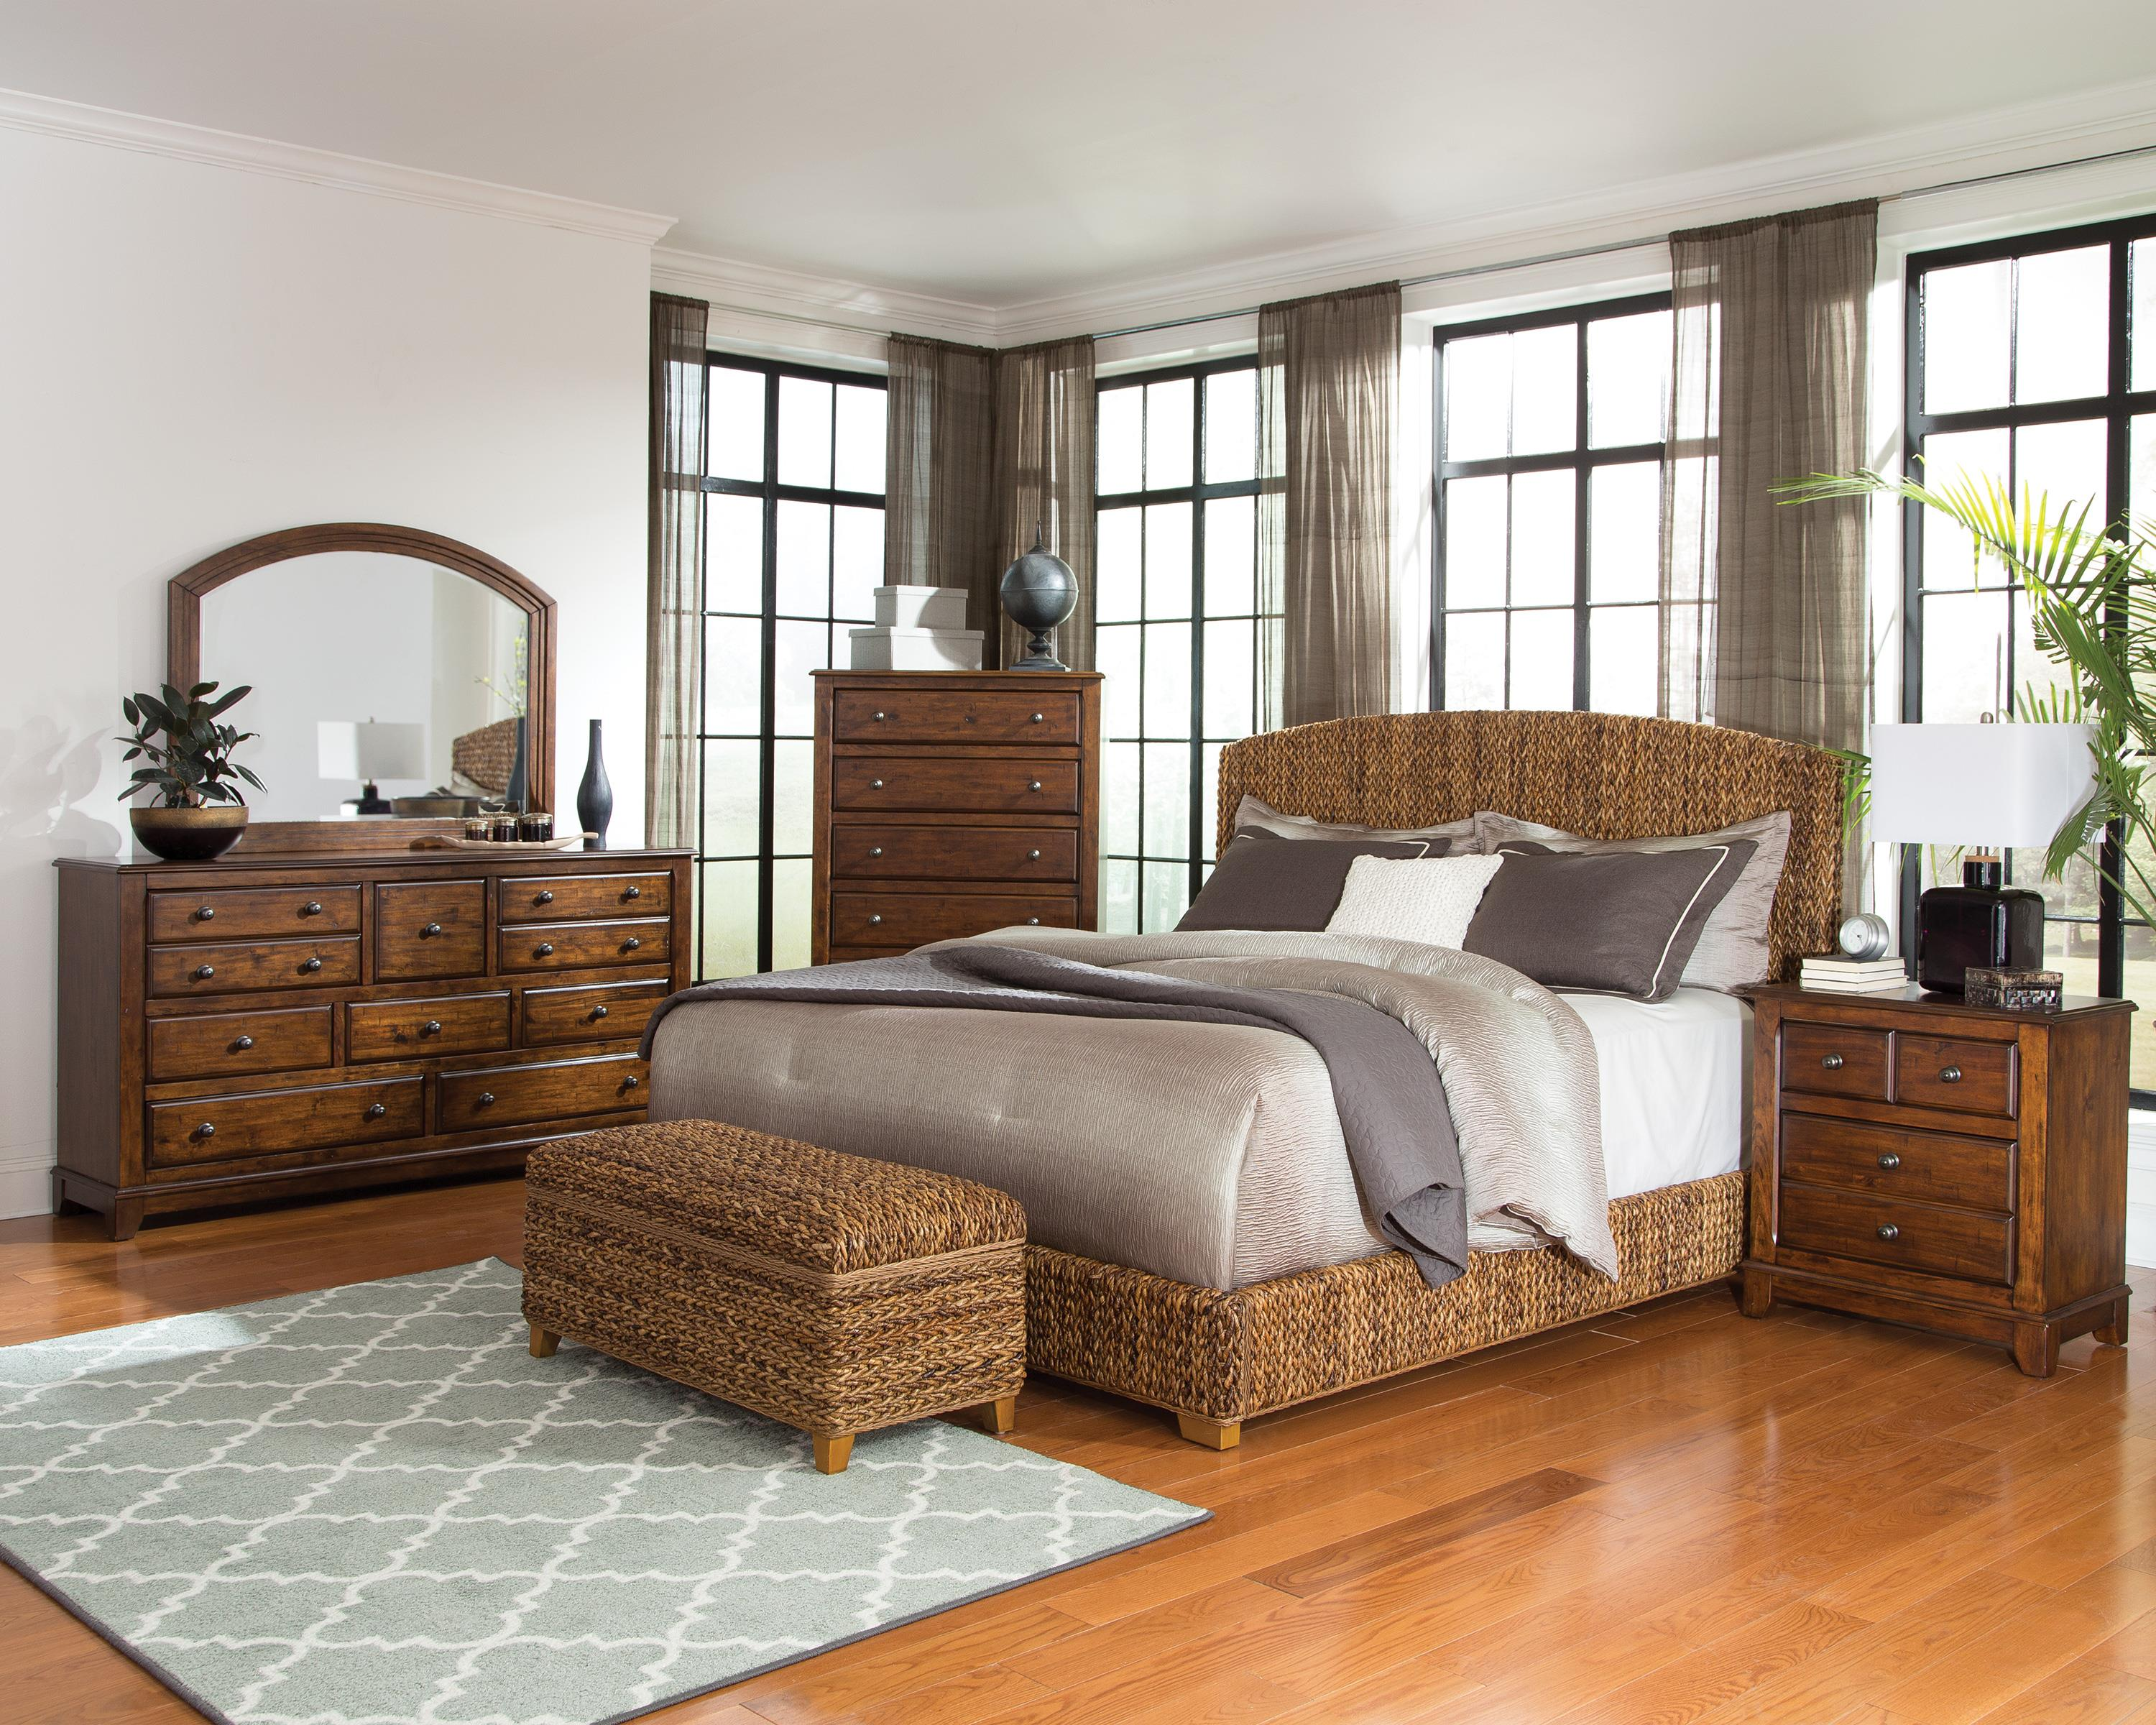 Laughton Woven Banana Leaf California King Bed